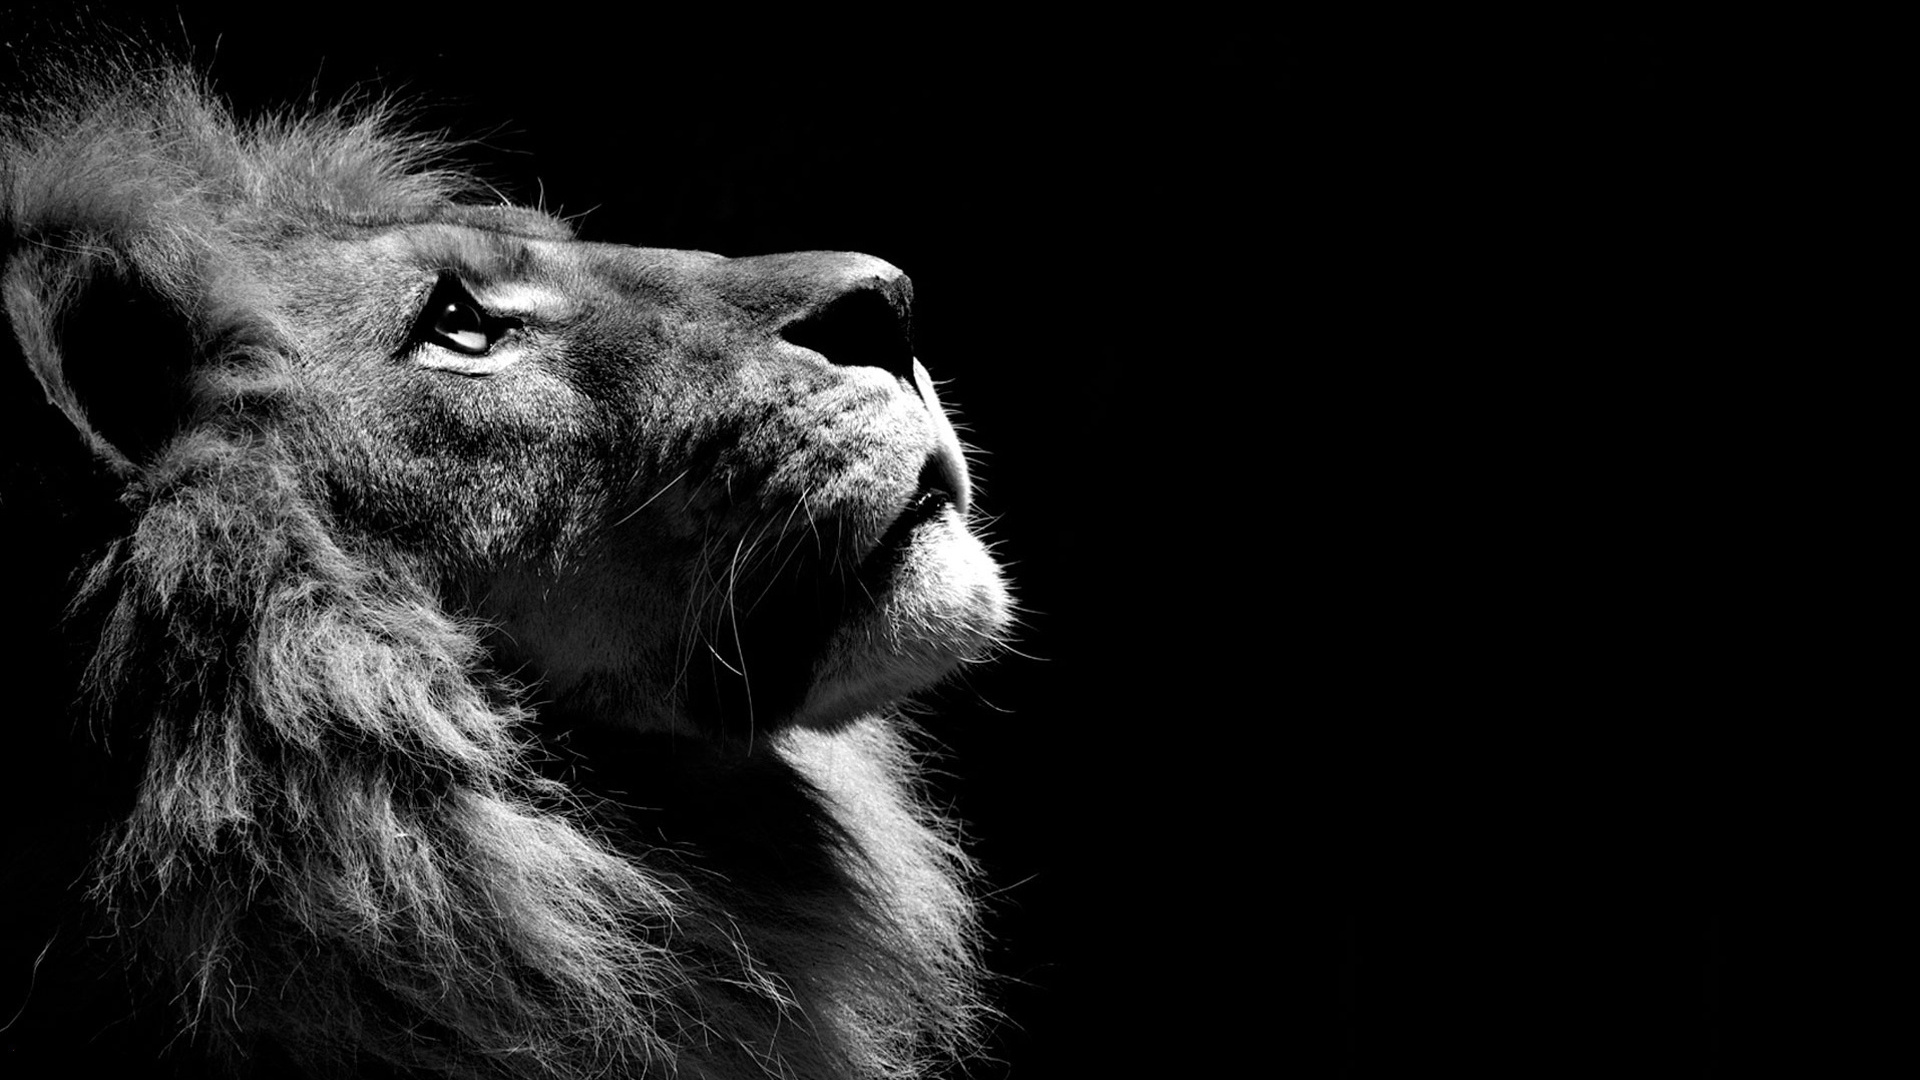 1920x1080 lion black and white laptop full hd 1080p hd 4k wallpapers